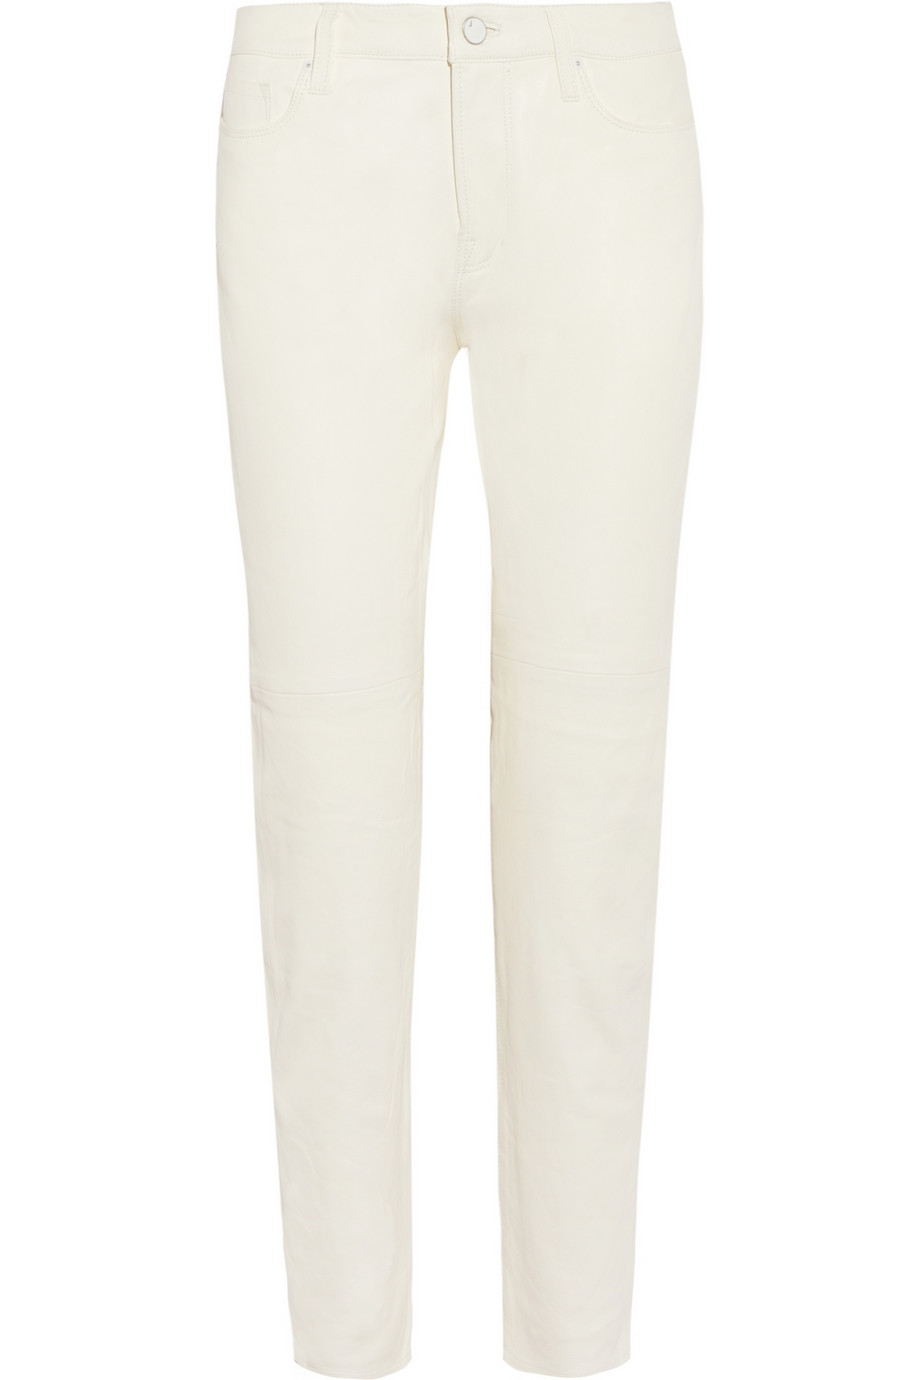 Paulette mid-rise boyfriend-fit leather pants | THE OUTNET